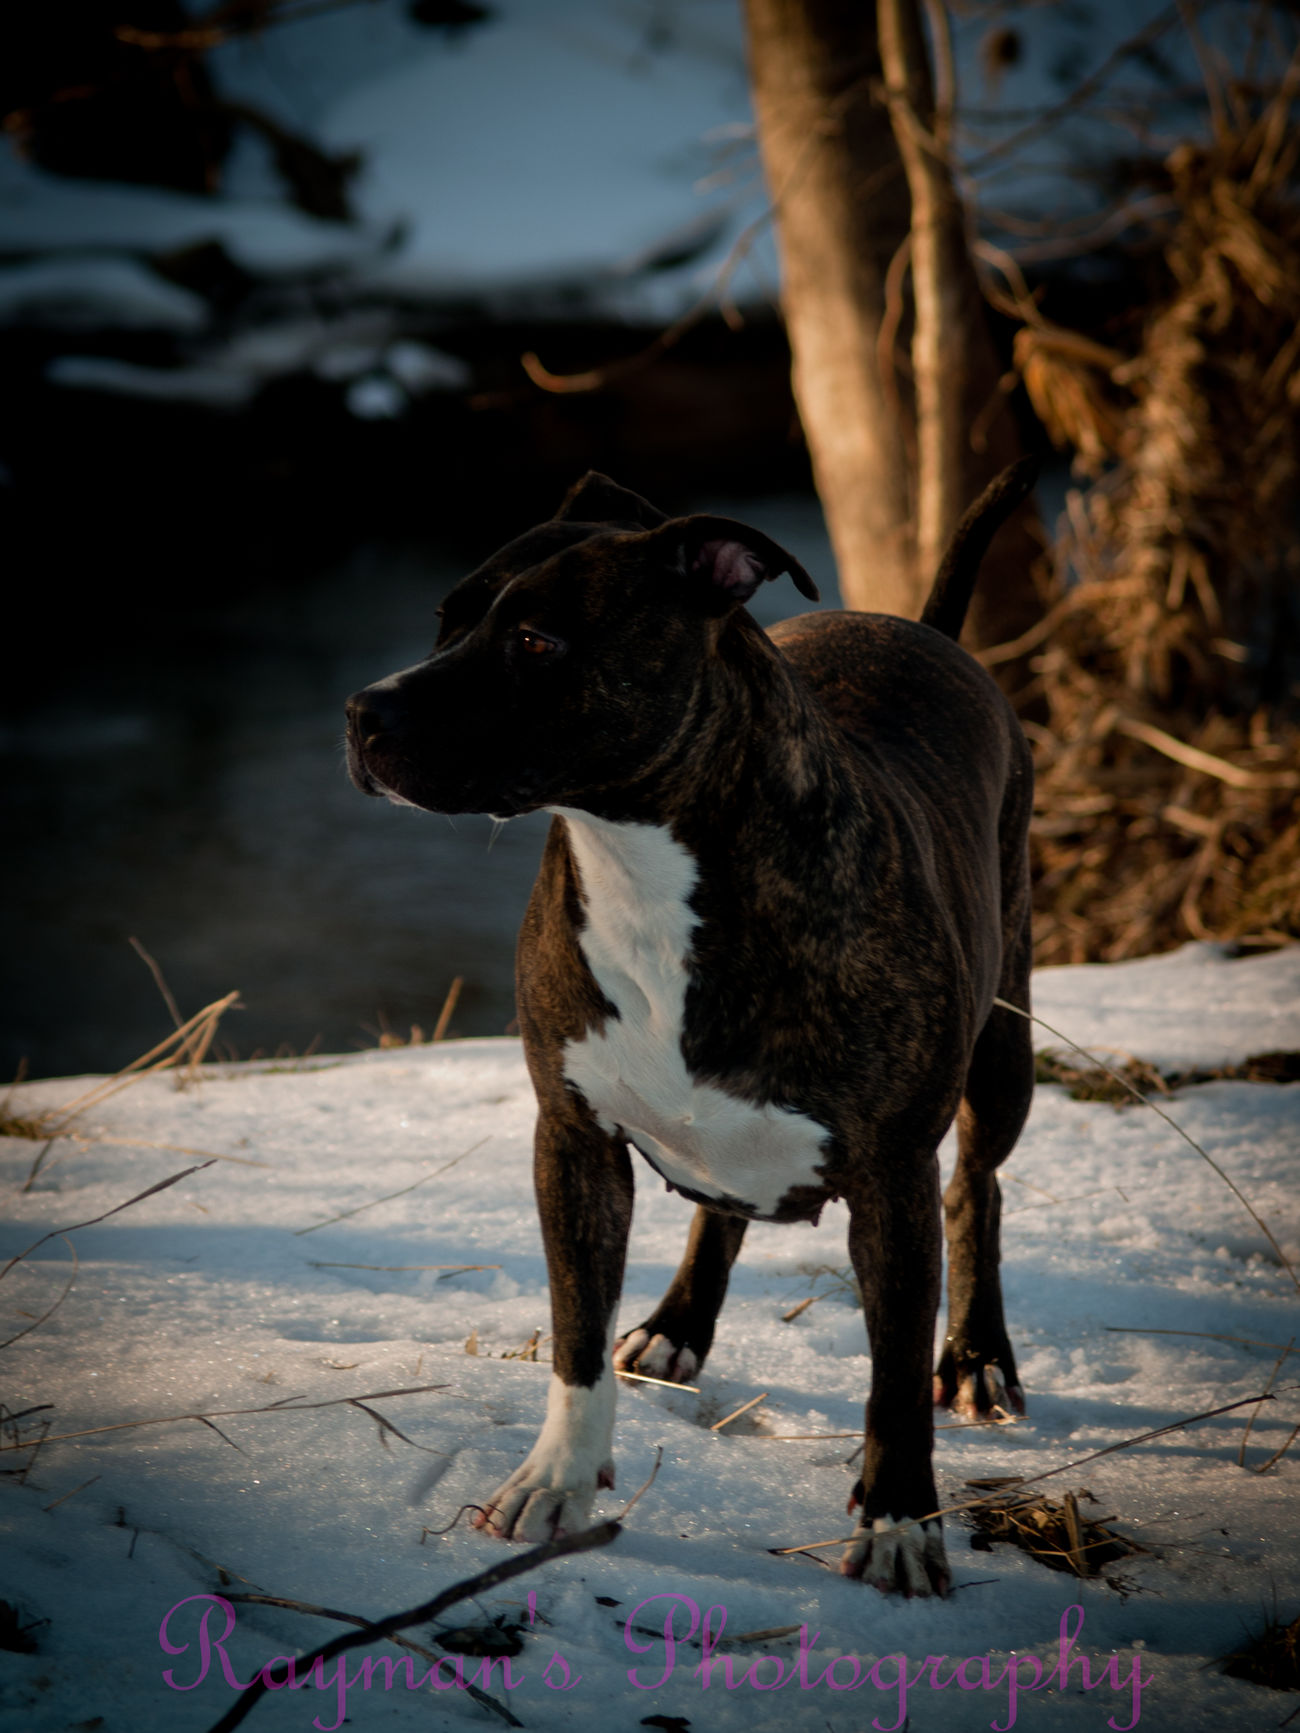 Photo♡ Photography Photographer Photography Is My Escape From Reality! Enjoying Nature The Photographer Ilovephotography Olympus Getolympus Creek Winter Down By The Creek Pitbull Lover I Love My Pitbull Ilovemypitbull Pitbull Love Pitbulls Pitbulllover Pitbulllove Pitbullsofinstagram Pitbull♥ Pitbull